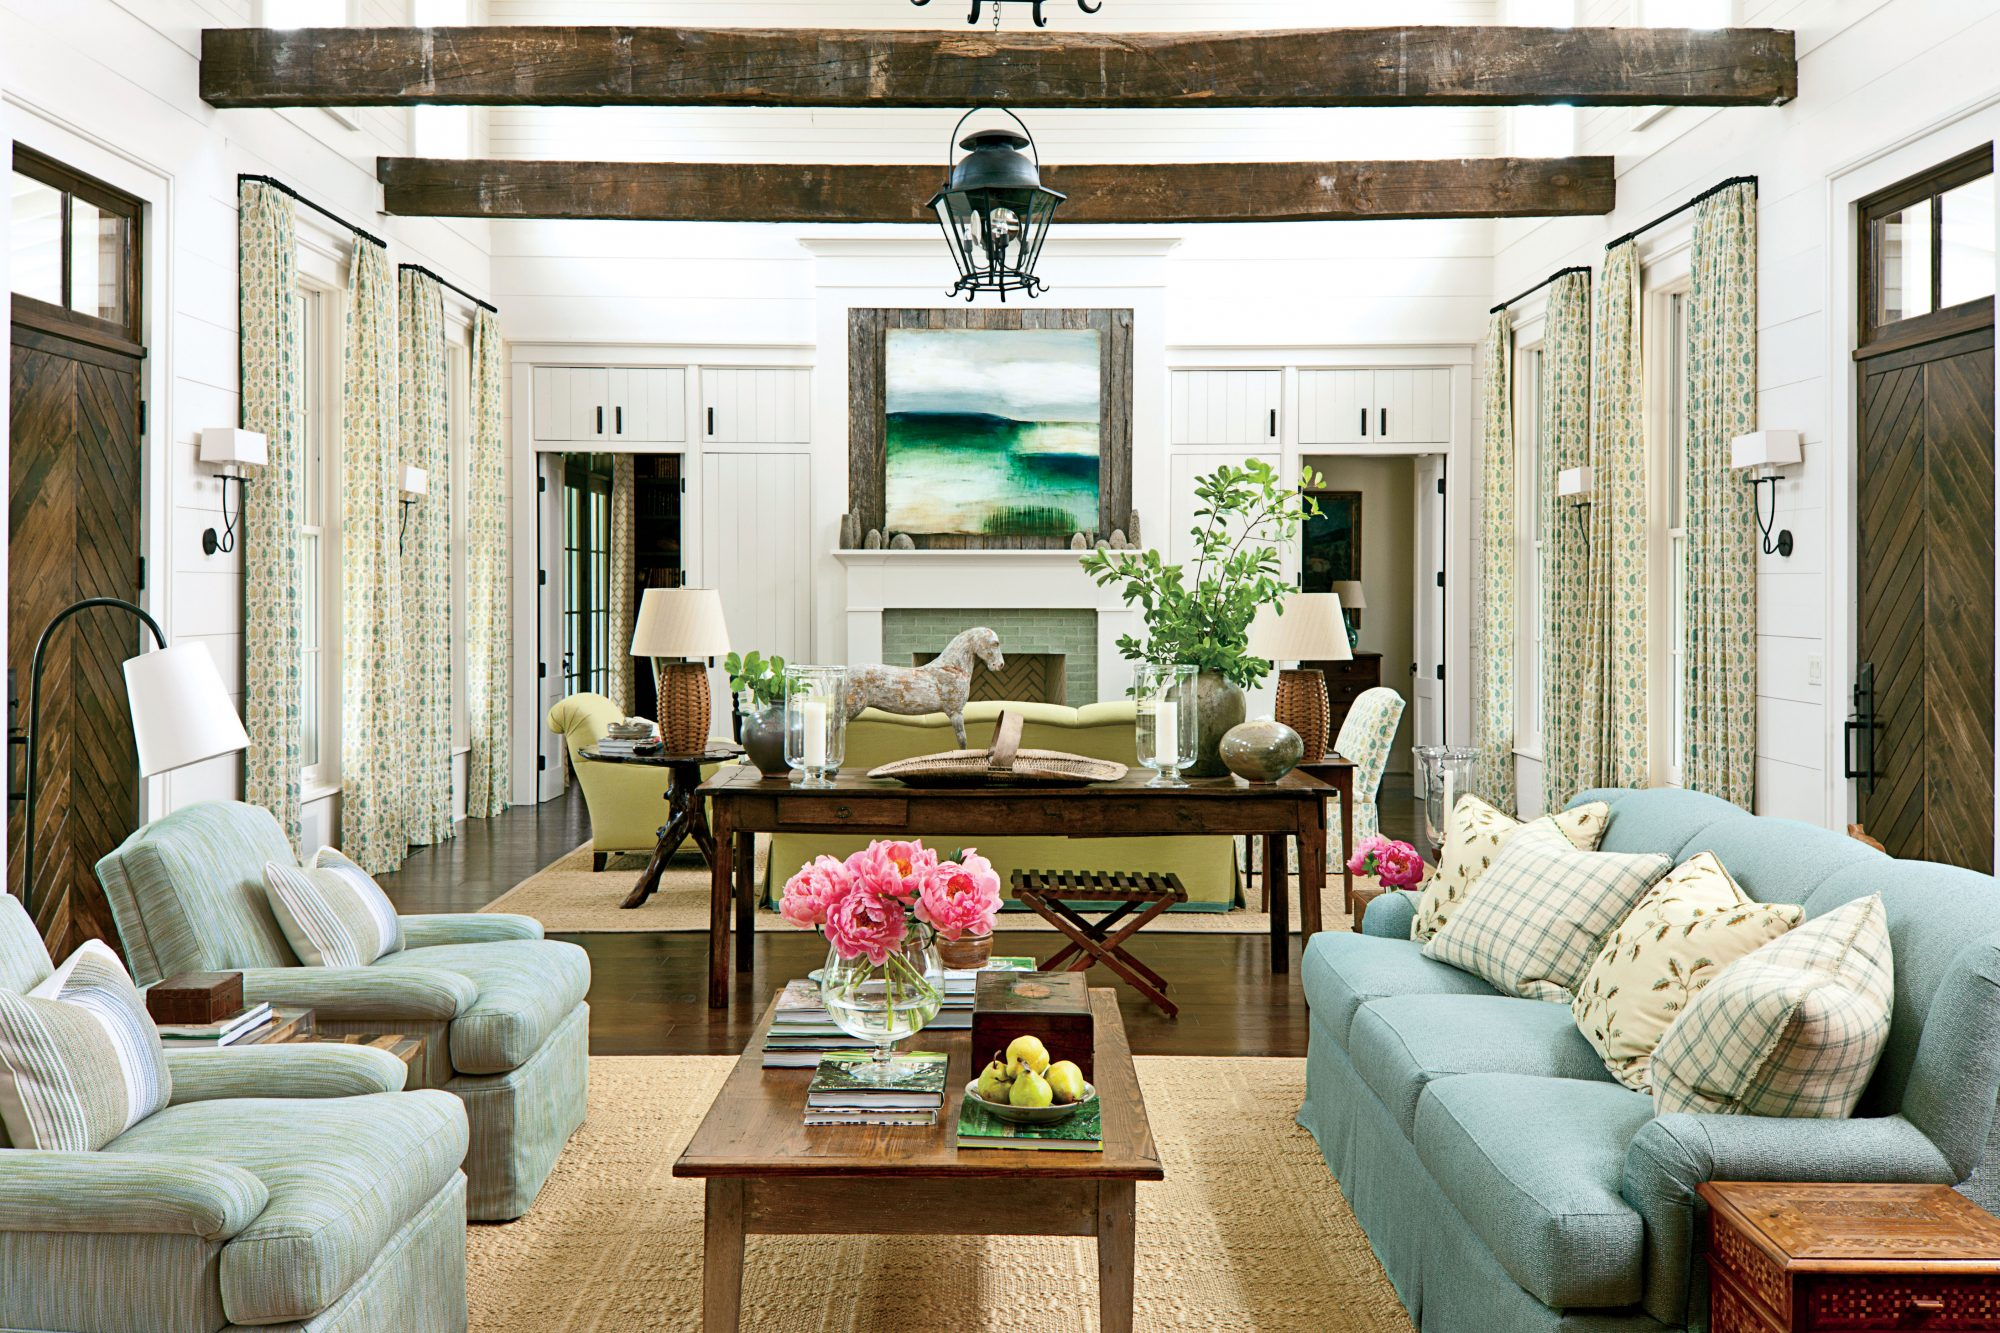 How To Decorate A Coffee Table - Southern Living